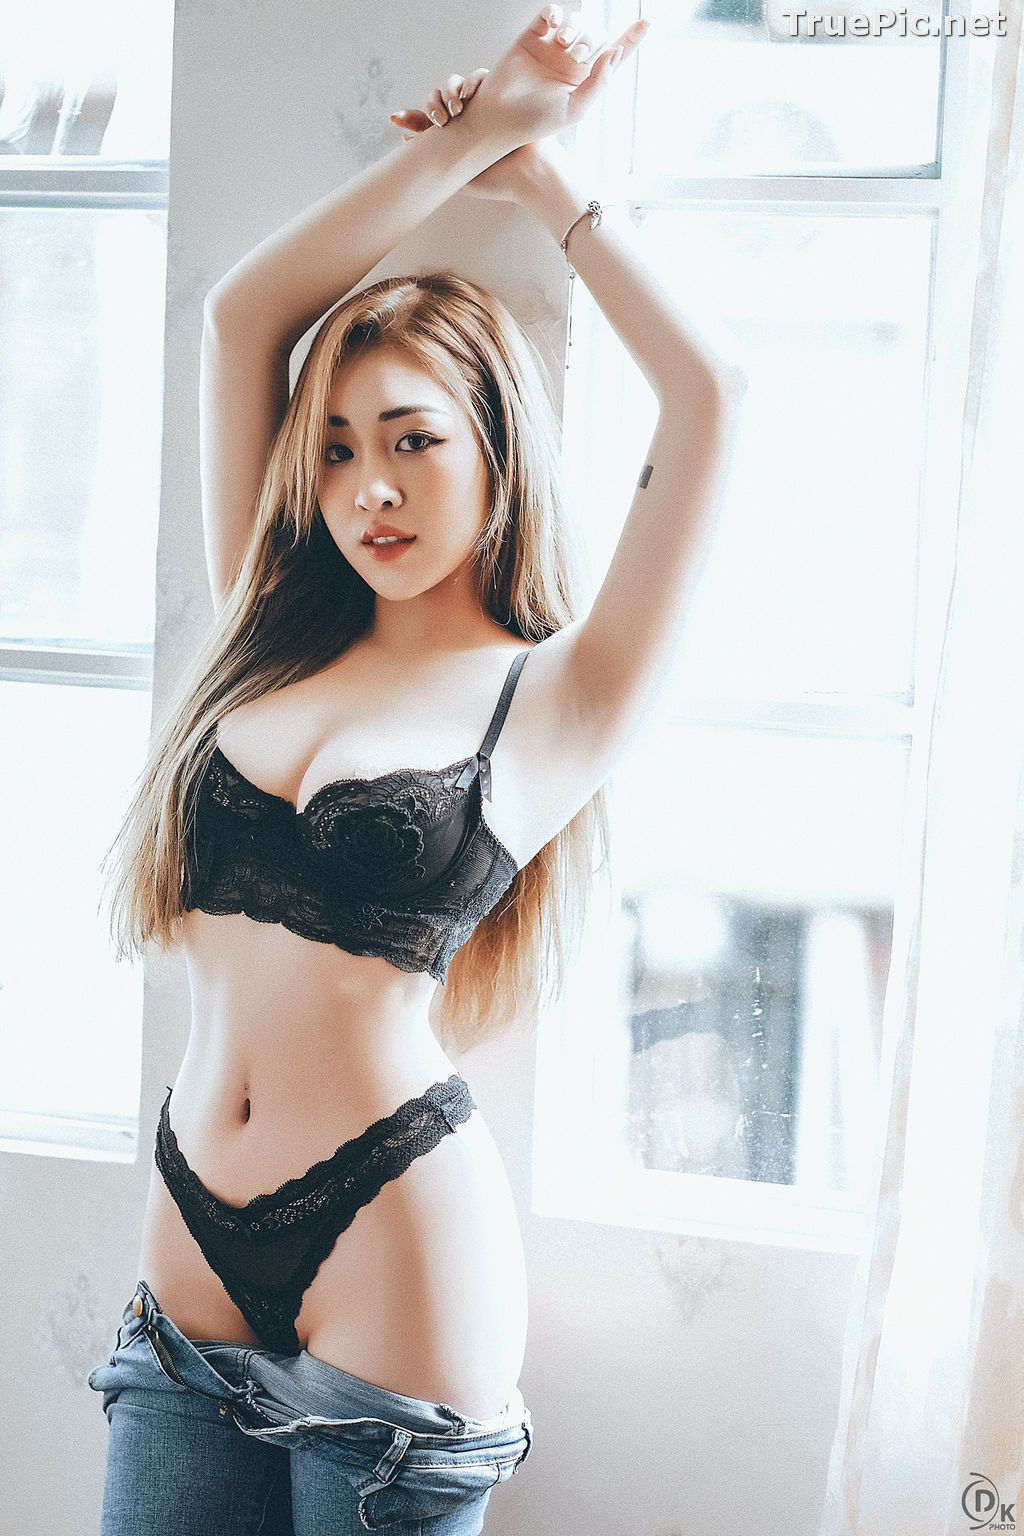 Image Vietnamese Model - Sexy Angel In Black Lingerie and Jean - TruePic.net - Picture-4